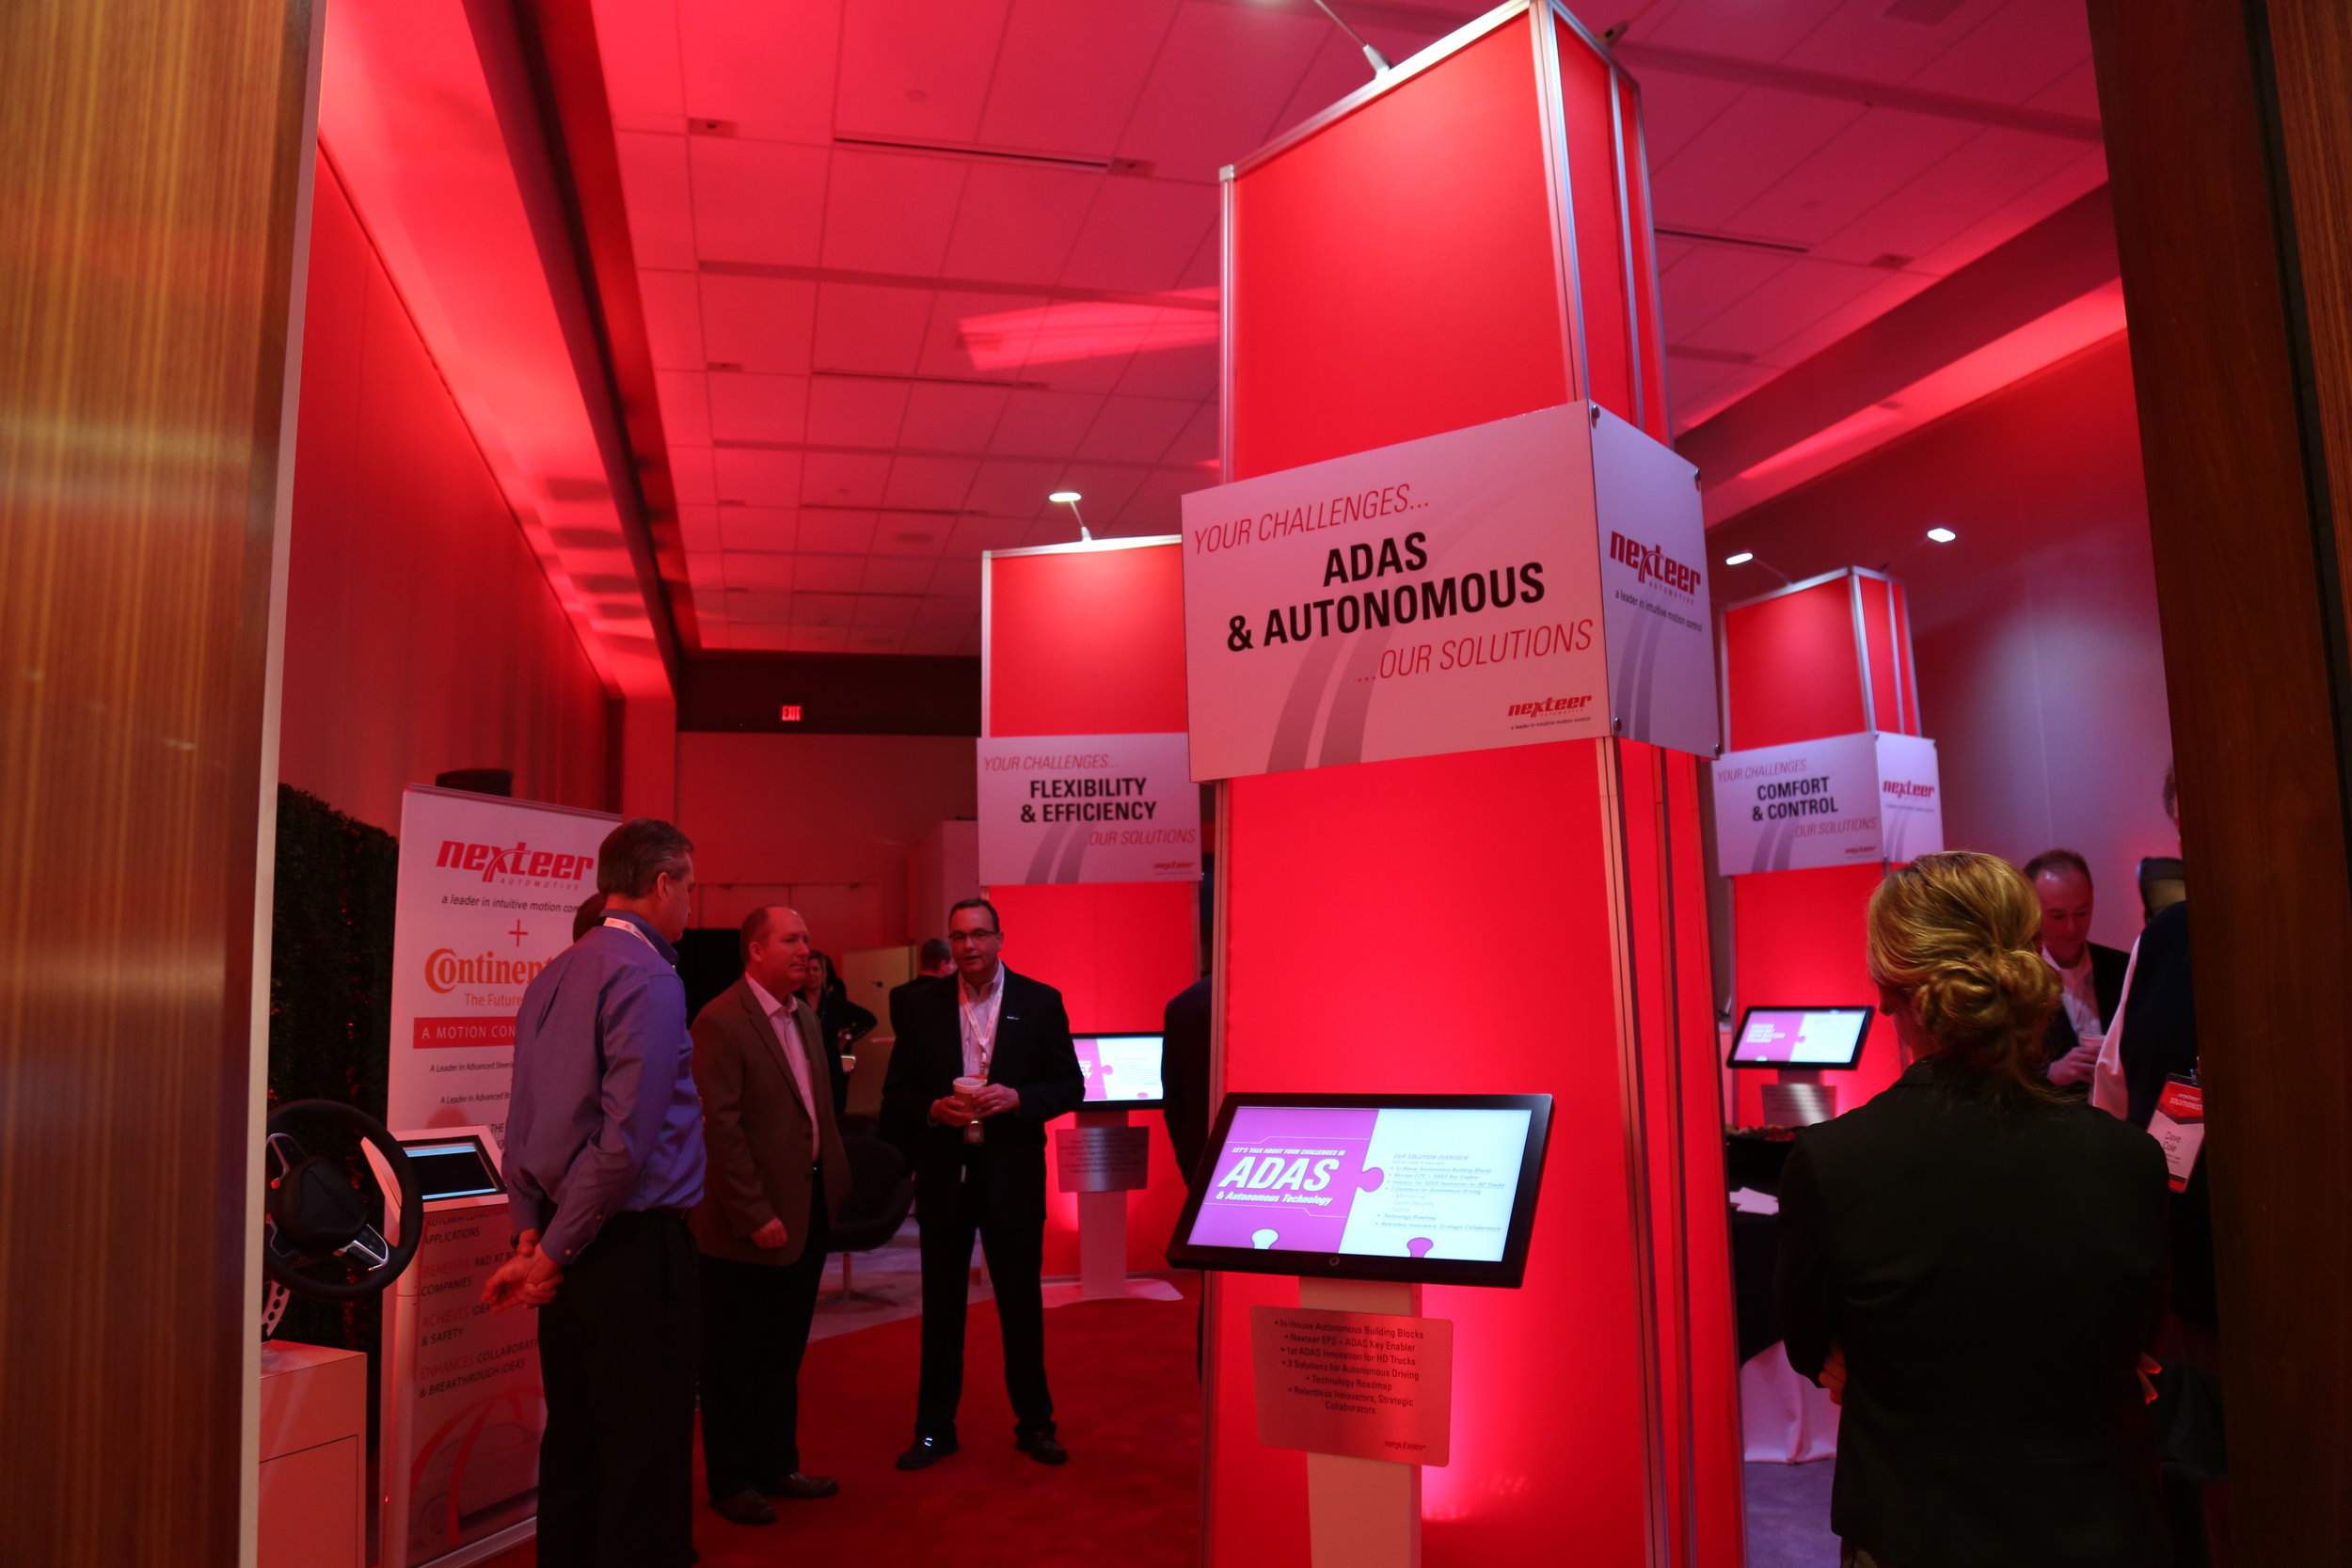 """Nexteer's 2017 North American International Auto Show Hospitality Suite:  Our sales team reported that customers were not aware of several solutions we offer for their biggest challenges. With that in mind, I developed the """"Solution Station"""" theme for our hospitality suite. Each touchscreen display offered a separate solution to our customer's greatest challenges in ADAS & Autonomous Driving, Safety & Security, Efficiency & Flexibility, and Control & Comfort. I developed the template for the solution stations and customized them with graphics,imagery, & videos tailored to each challenge +solution. We have now implemented the same """"solution station"""" approach at our global trade shows."""